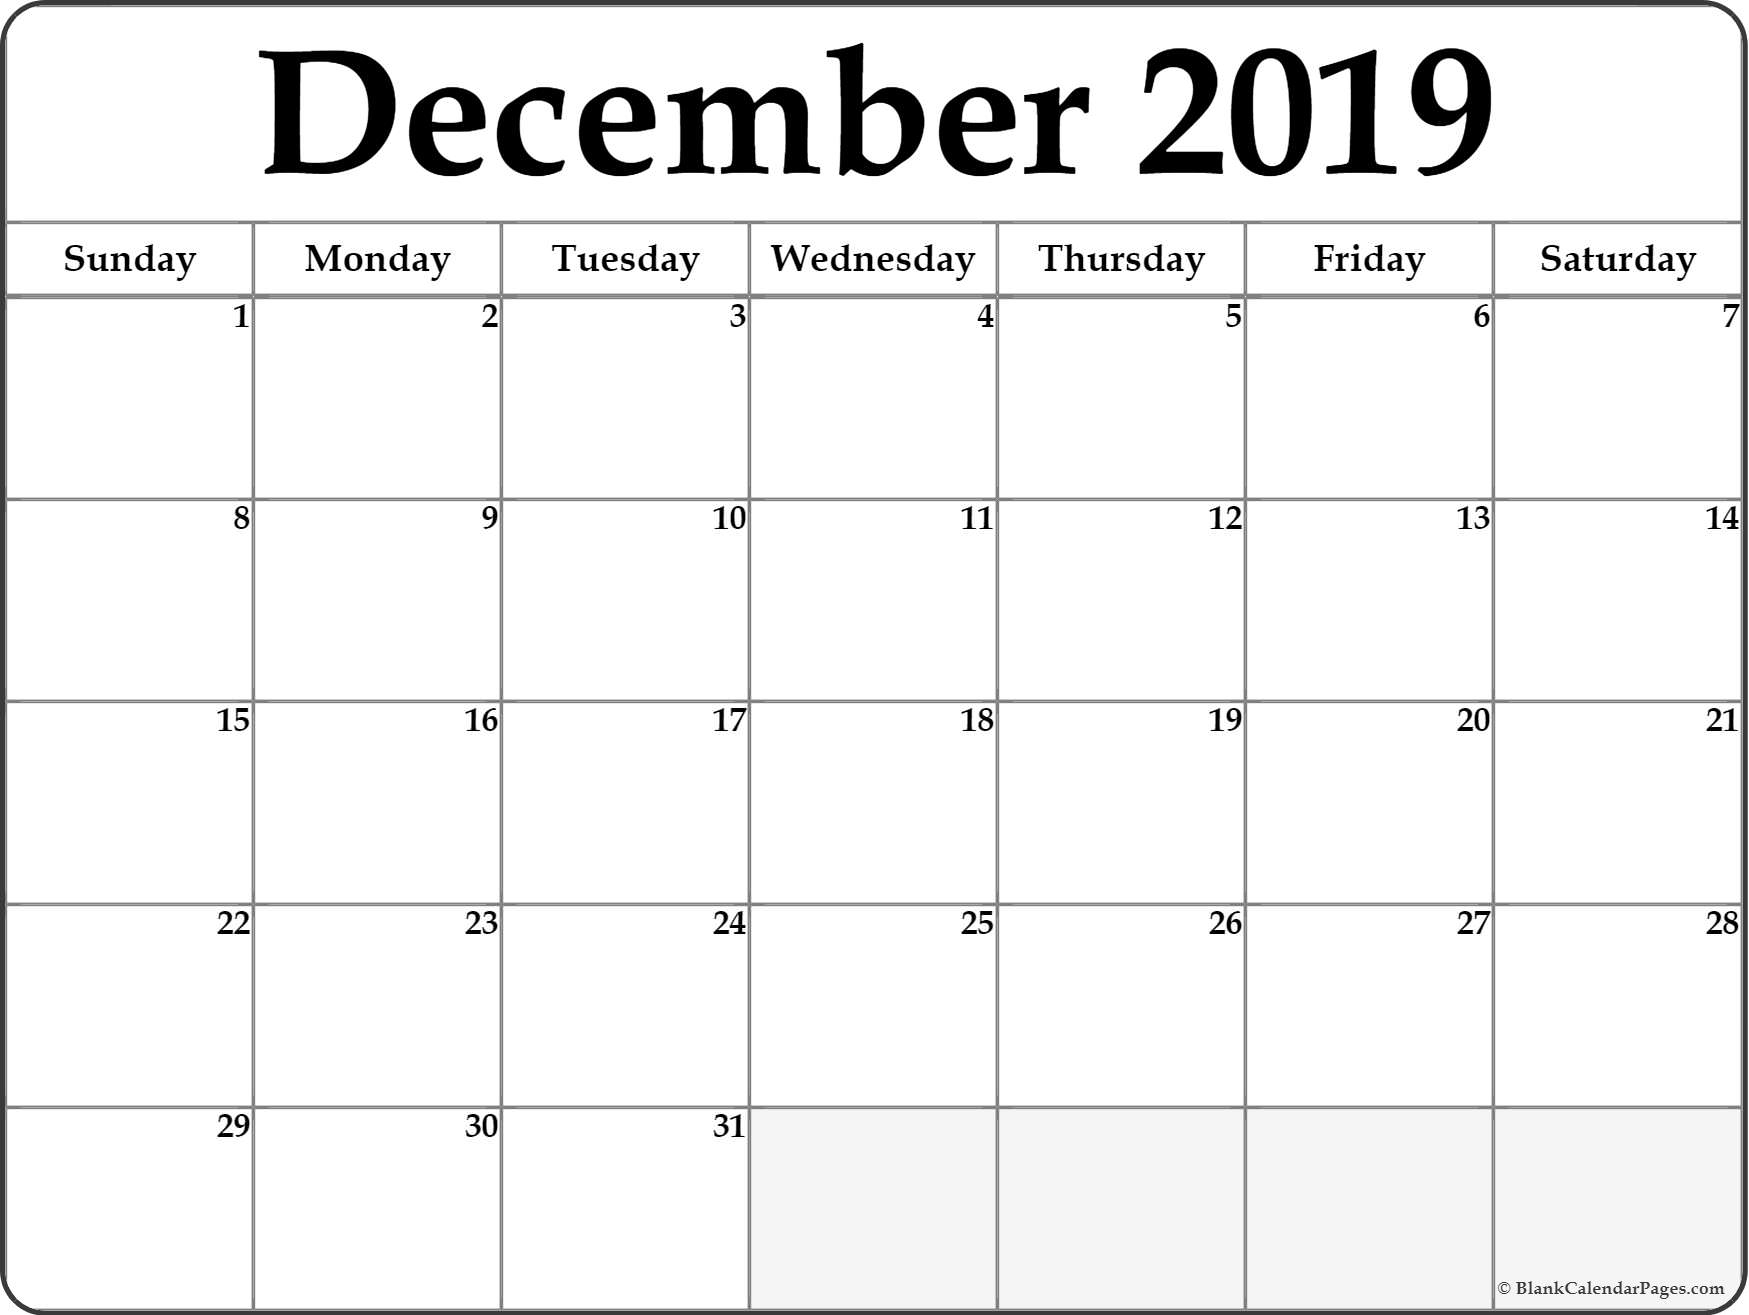 December 2019 Calendar | Free Printable Monthly Calendars inside Calendar With Blank Squares